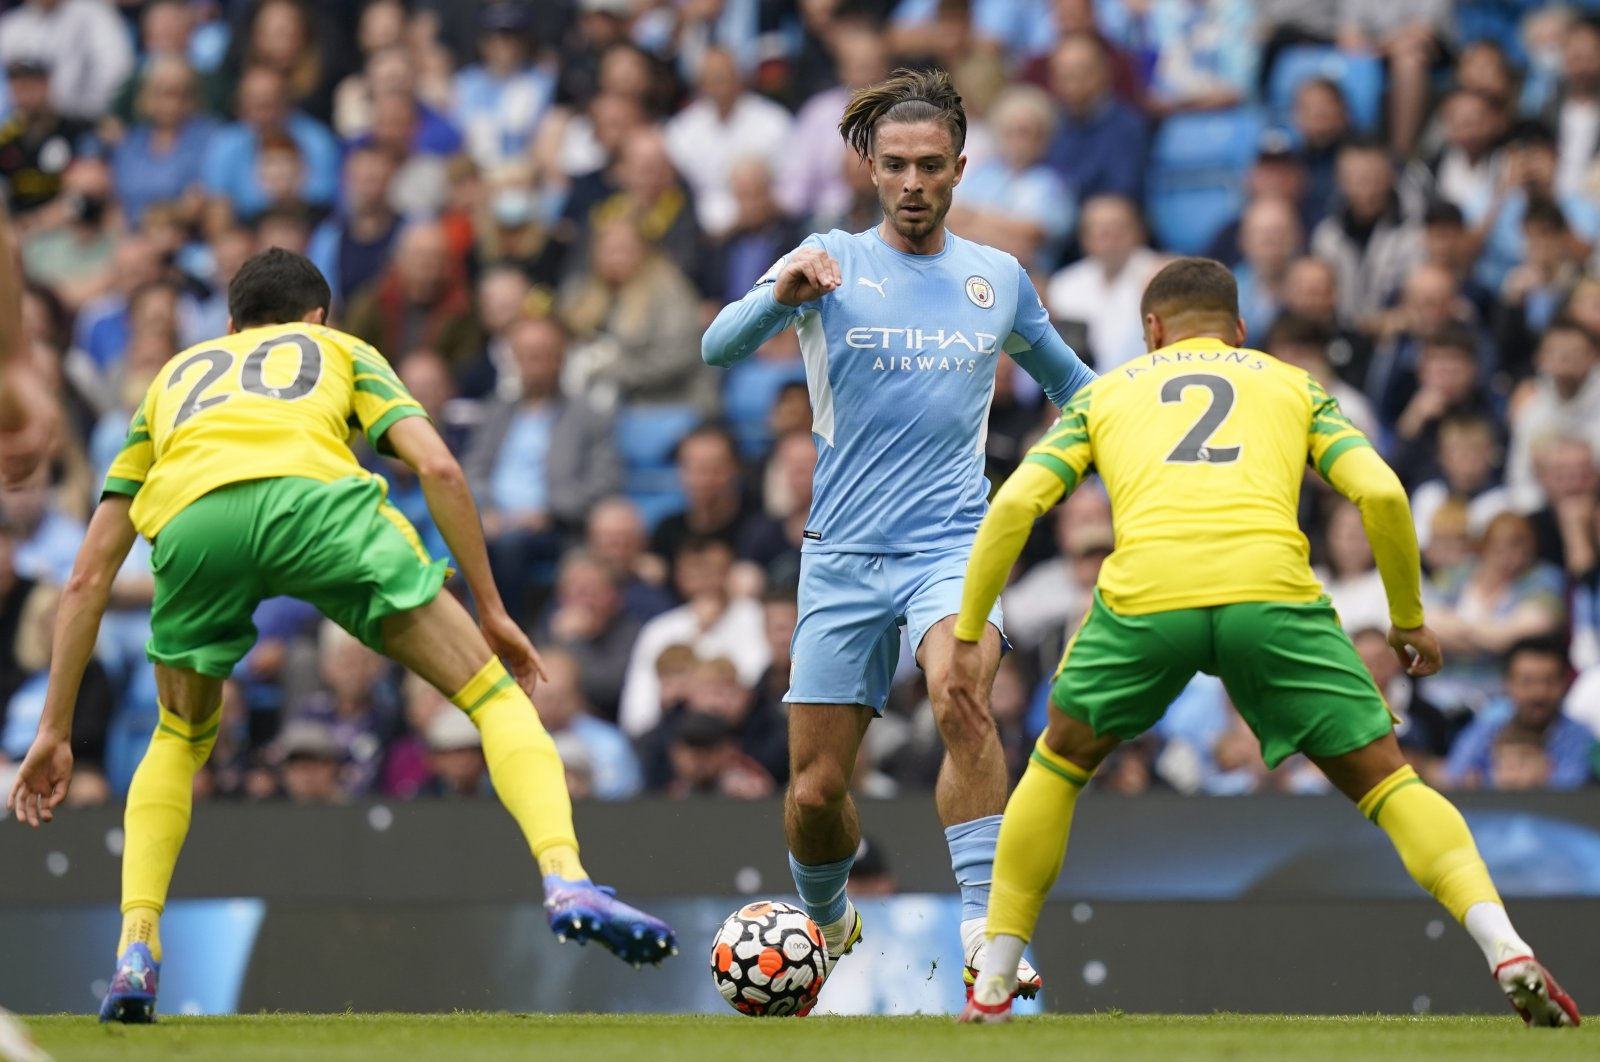 Manchester City's Jack Grealish in action during a Premier League match against Norwich City in Manchester, England, Aug. 21, 2021. (EPA Photo)